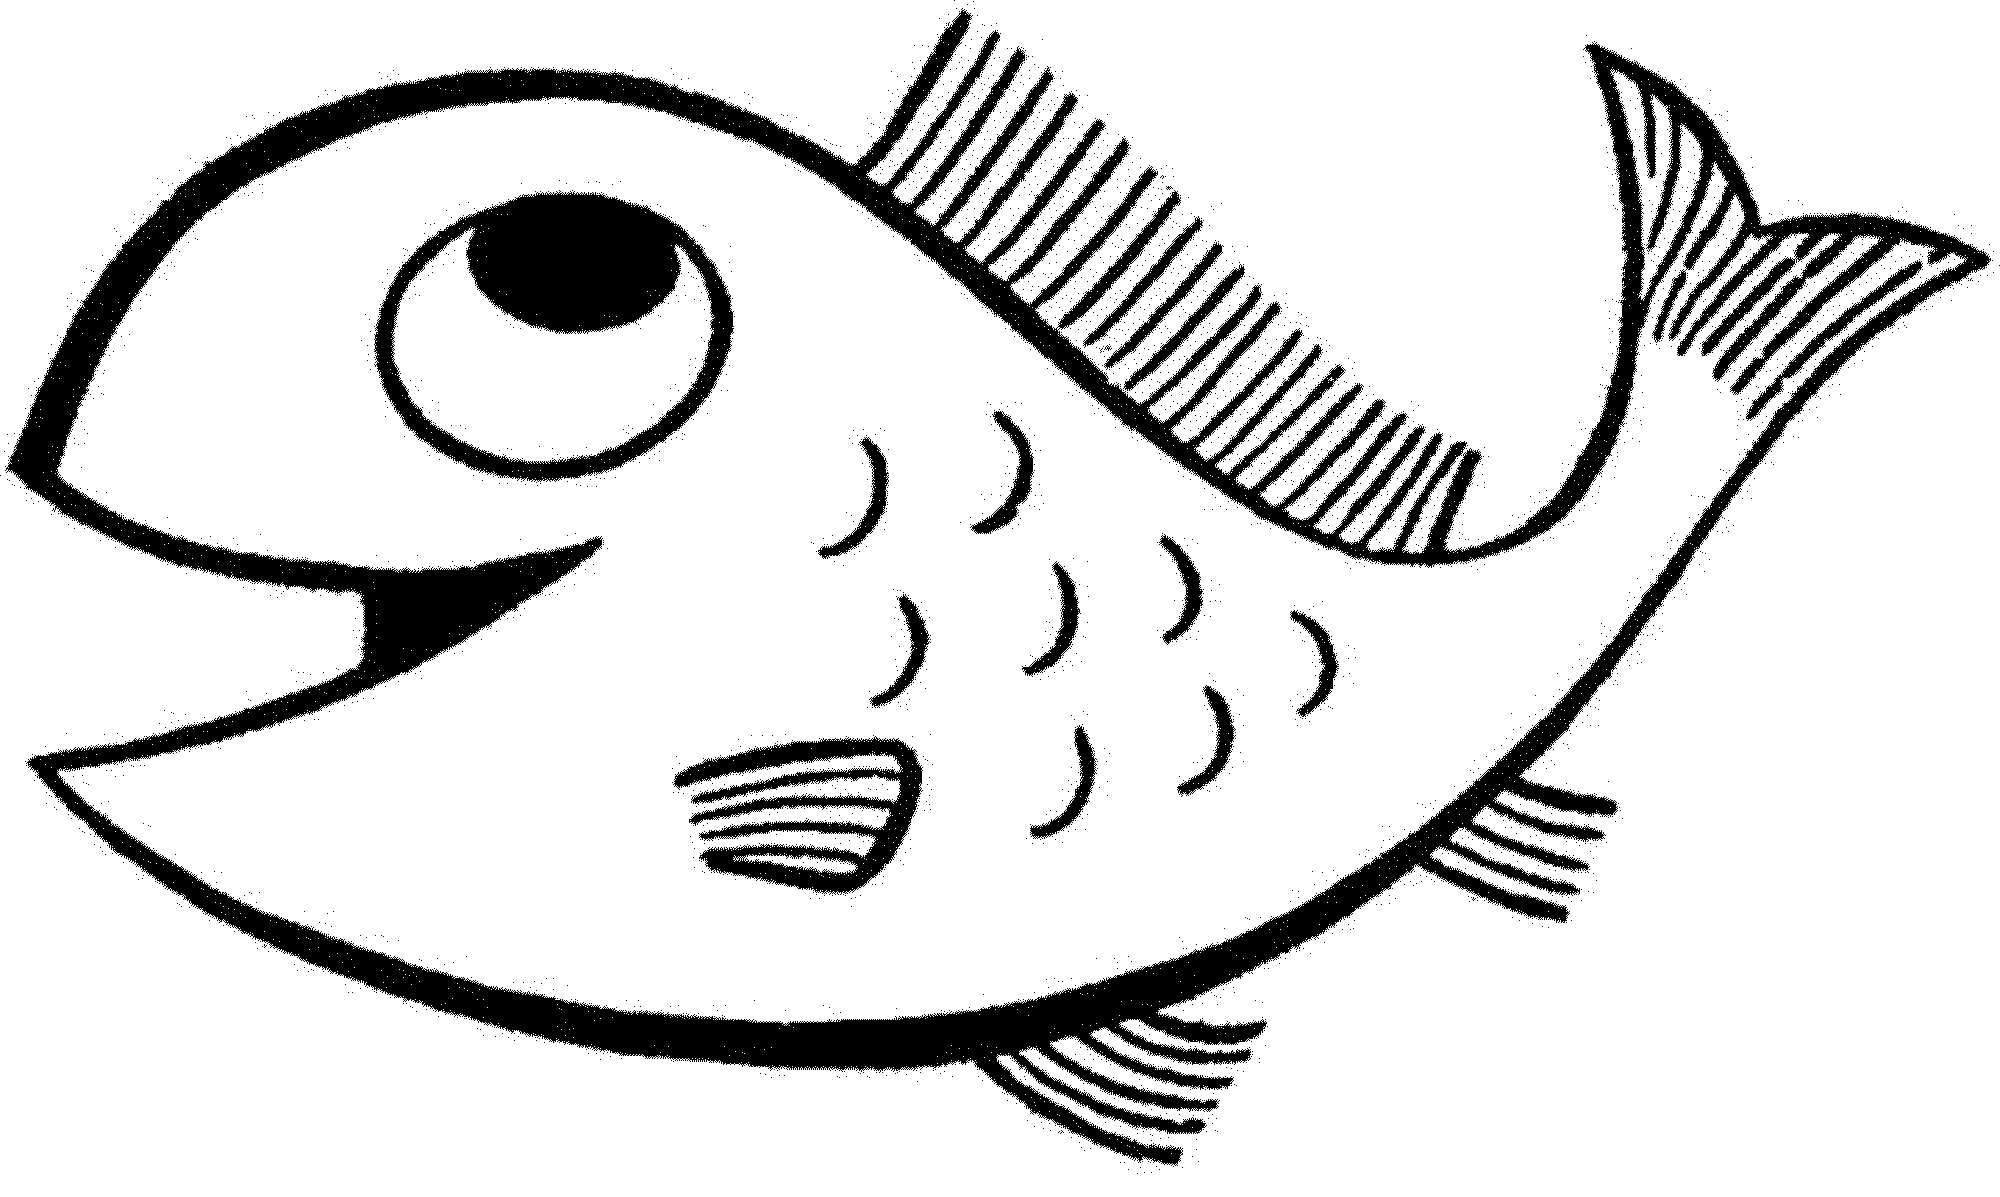 coloring pages for fish simple fish coloring pages download and print for free fish for coloring pages